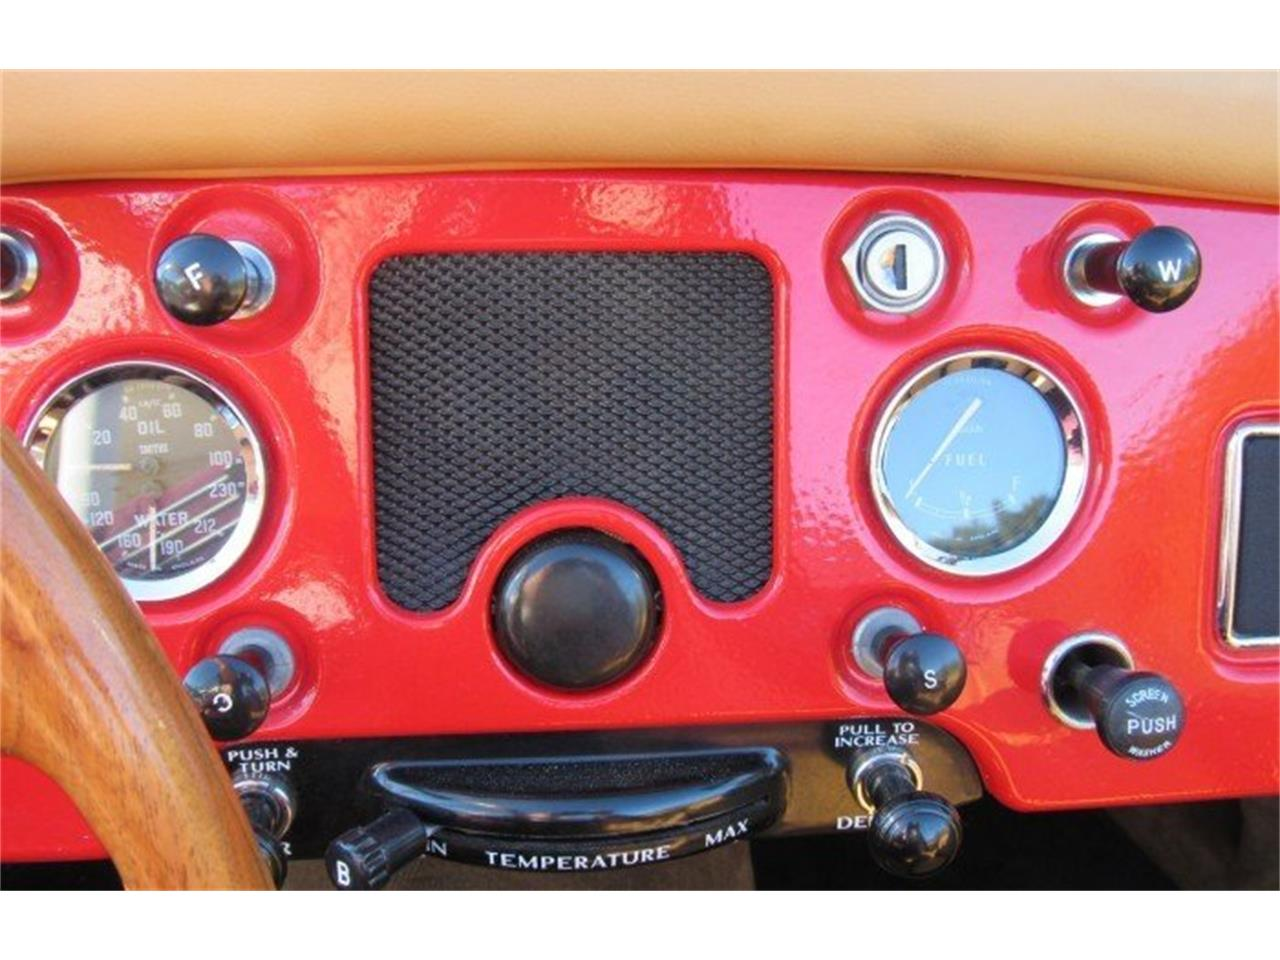 Large Picture of Classic 1957 MGA located in Punta Gorda Florida Auction Vehicle - PH10